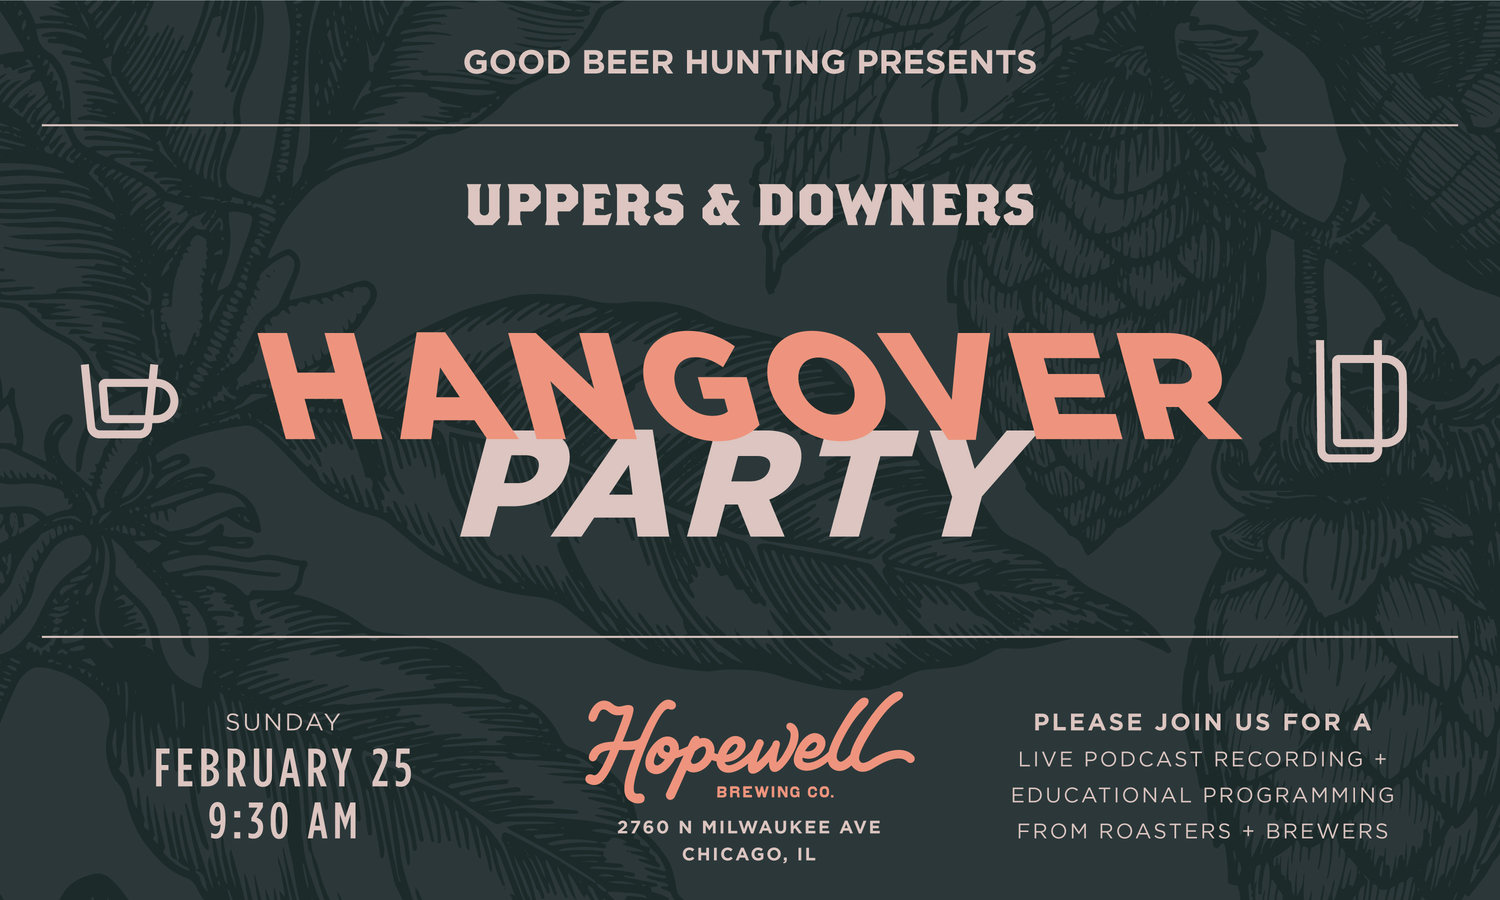 HangoverParty_EventGraphic_2018.jpg